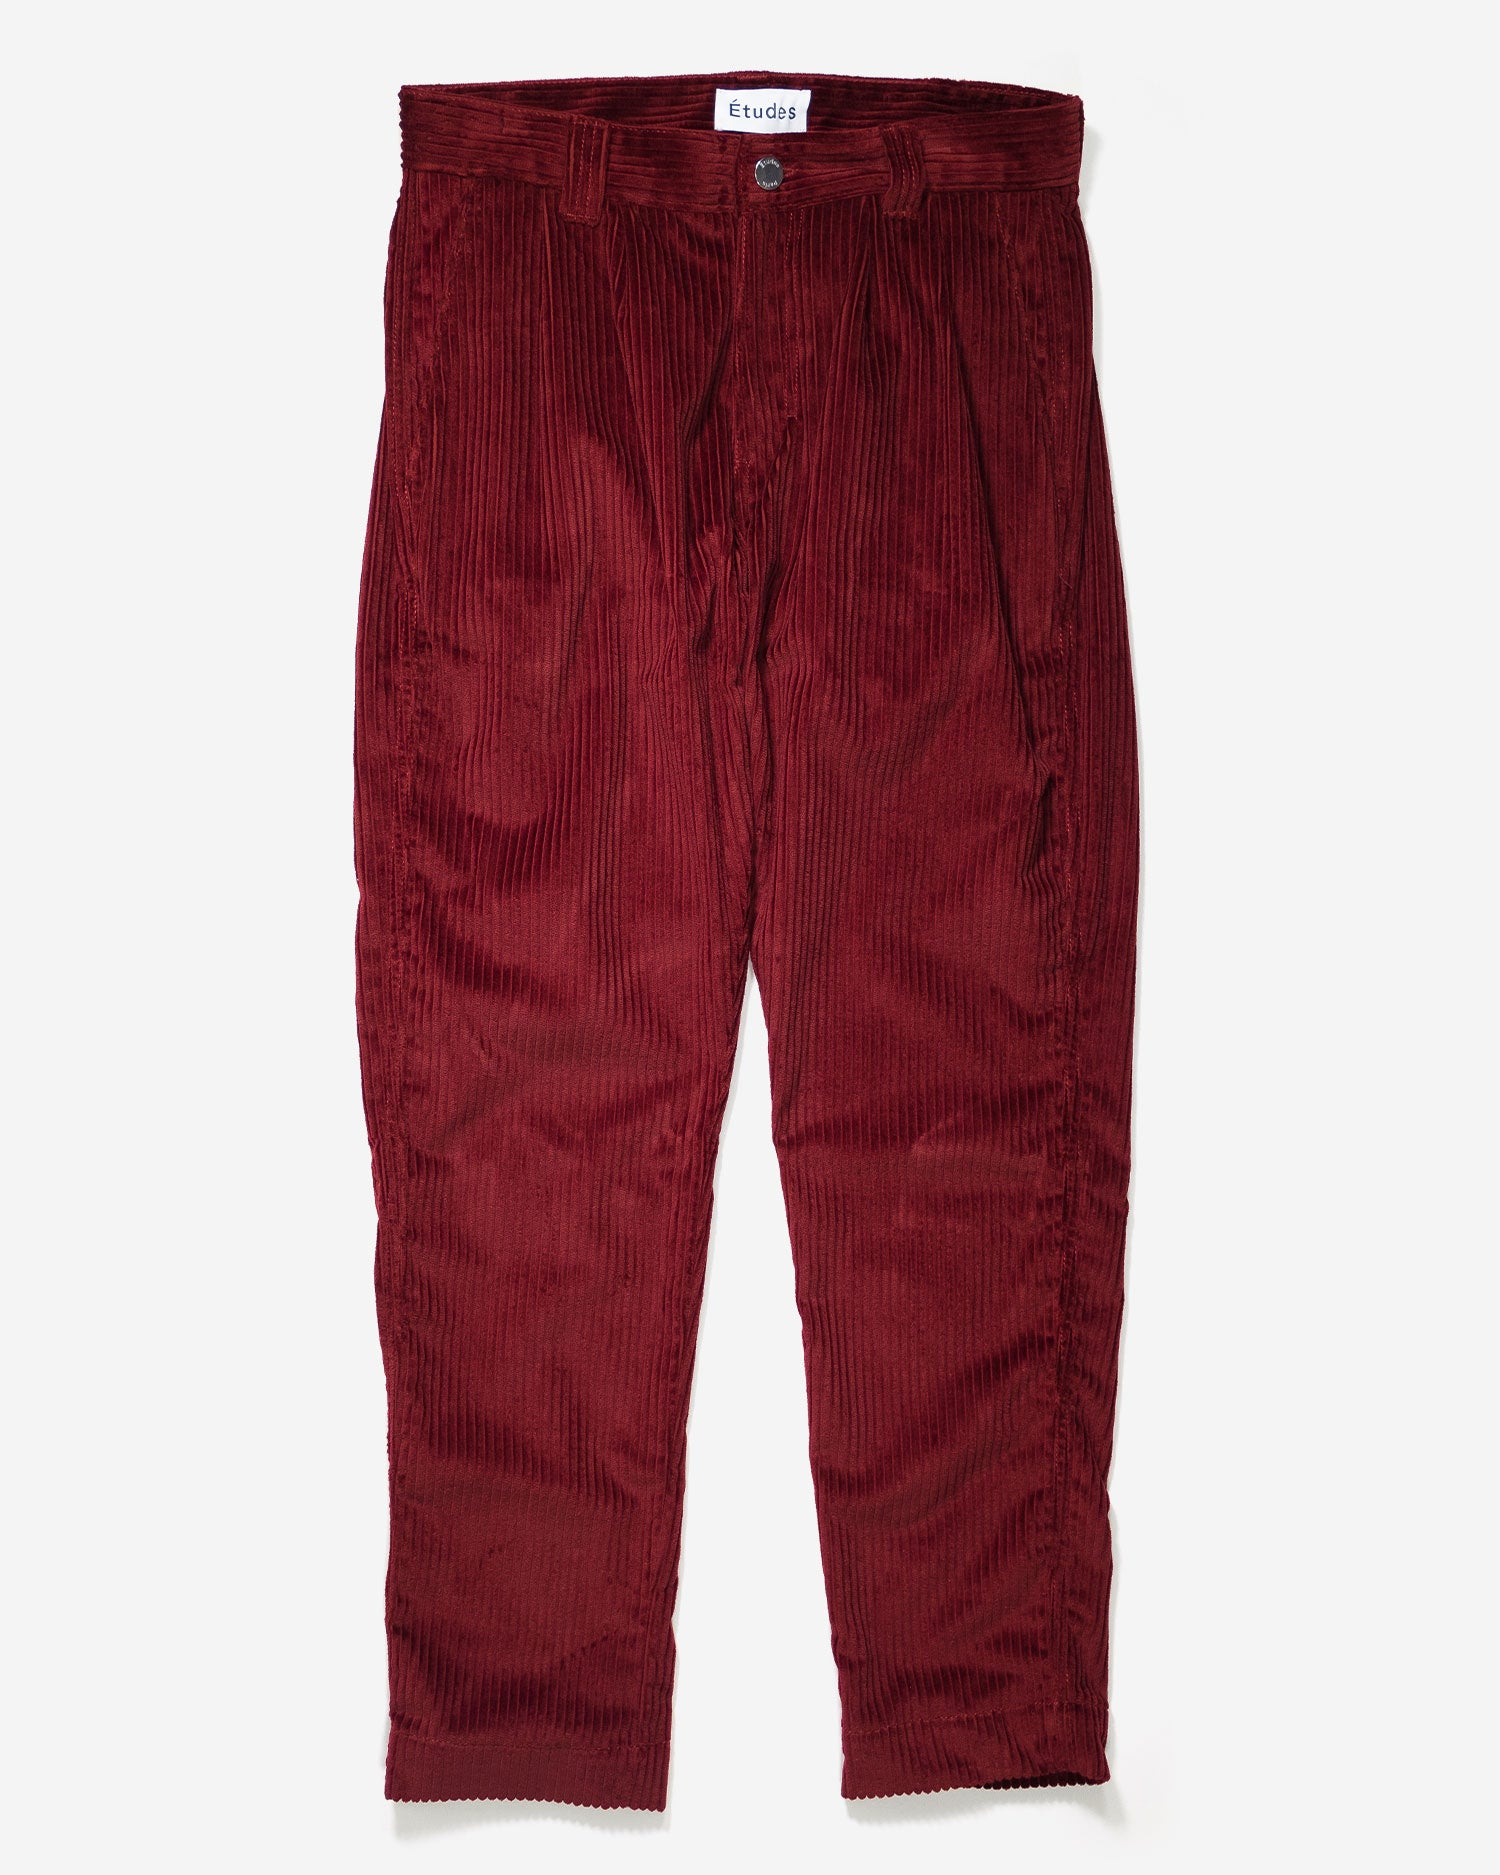 Études Cinema Corduroy Trousers Burgundy